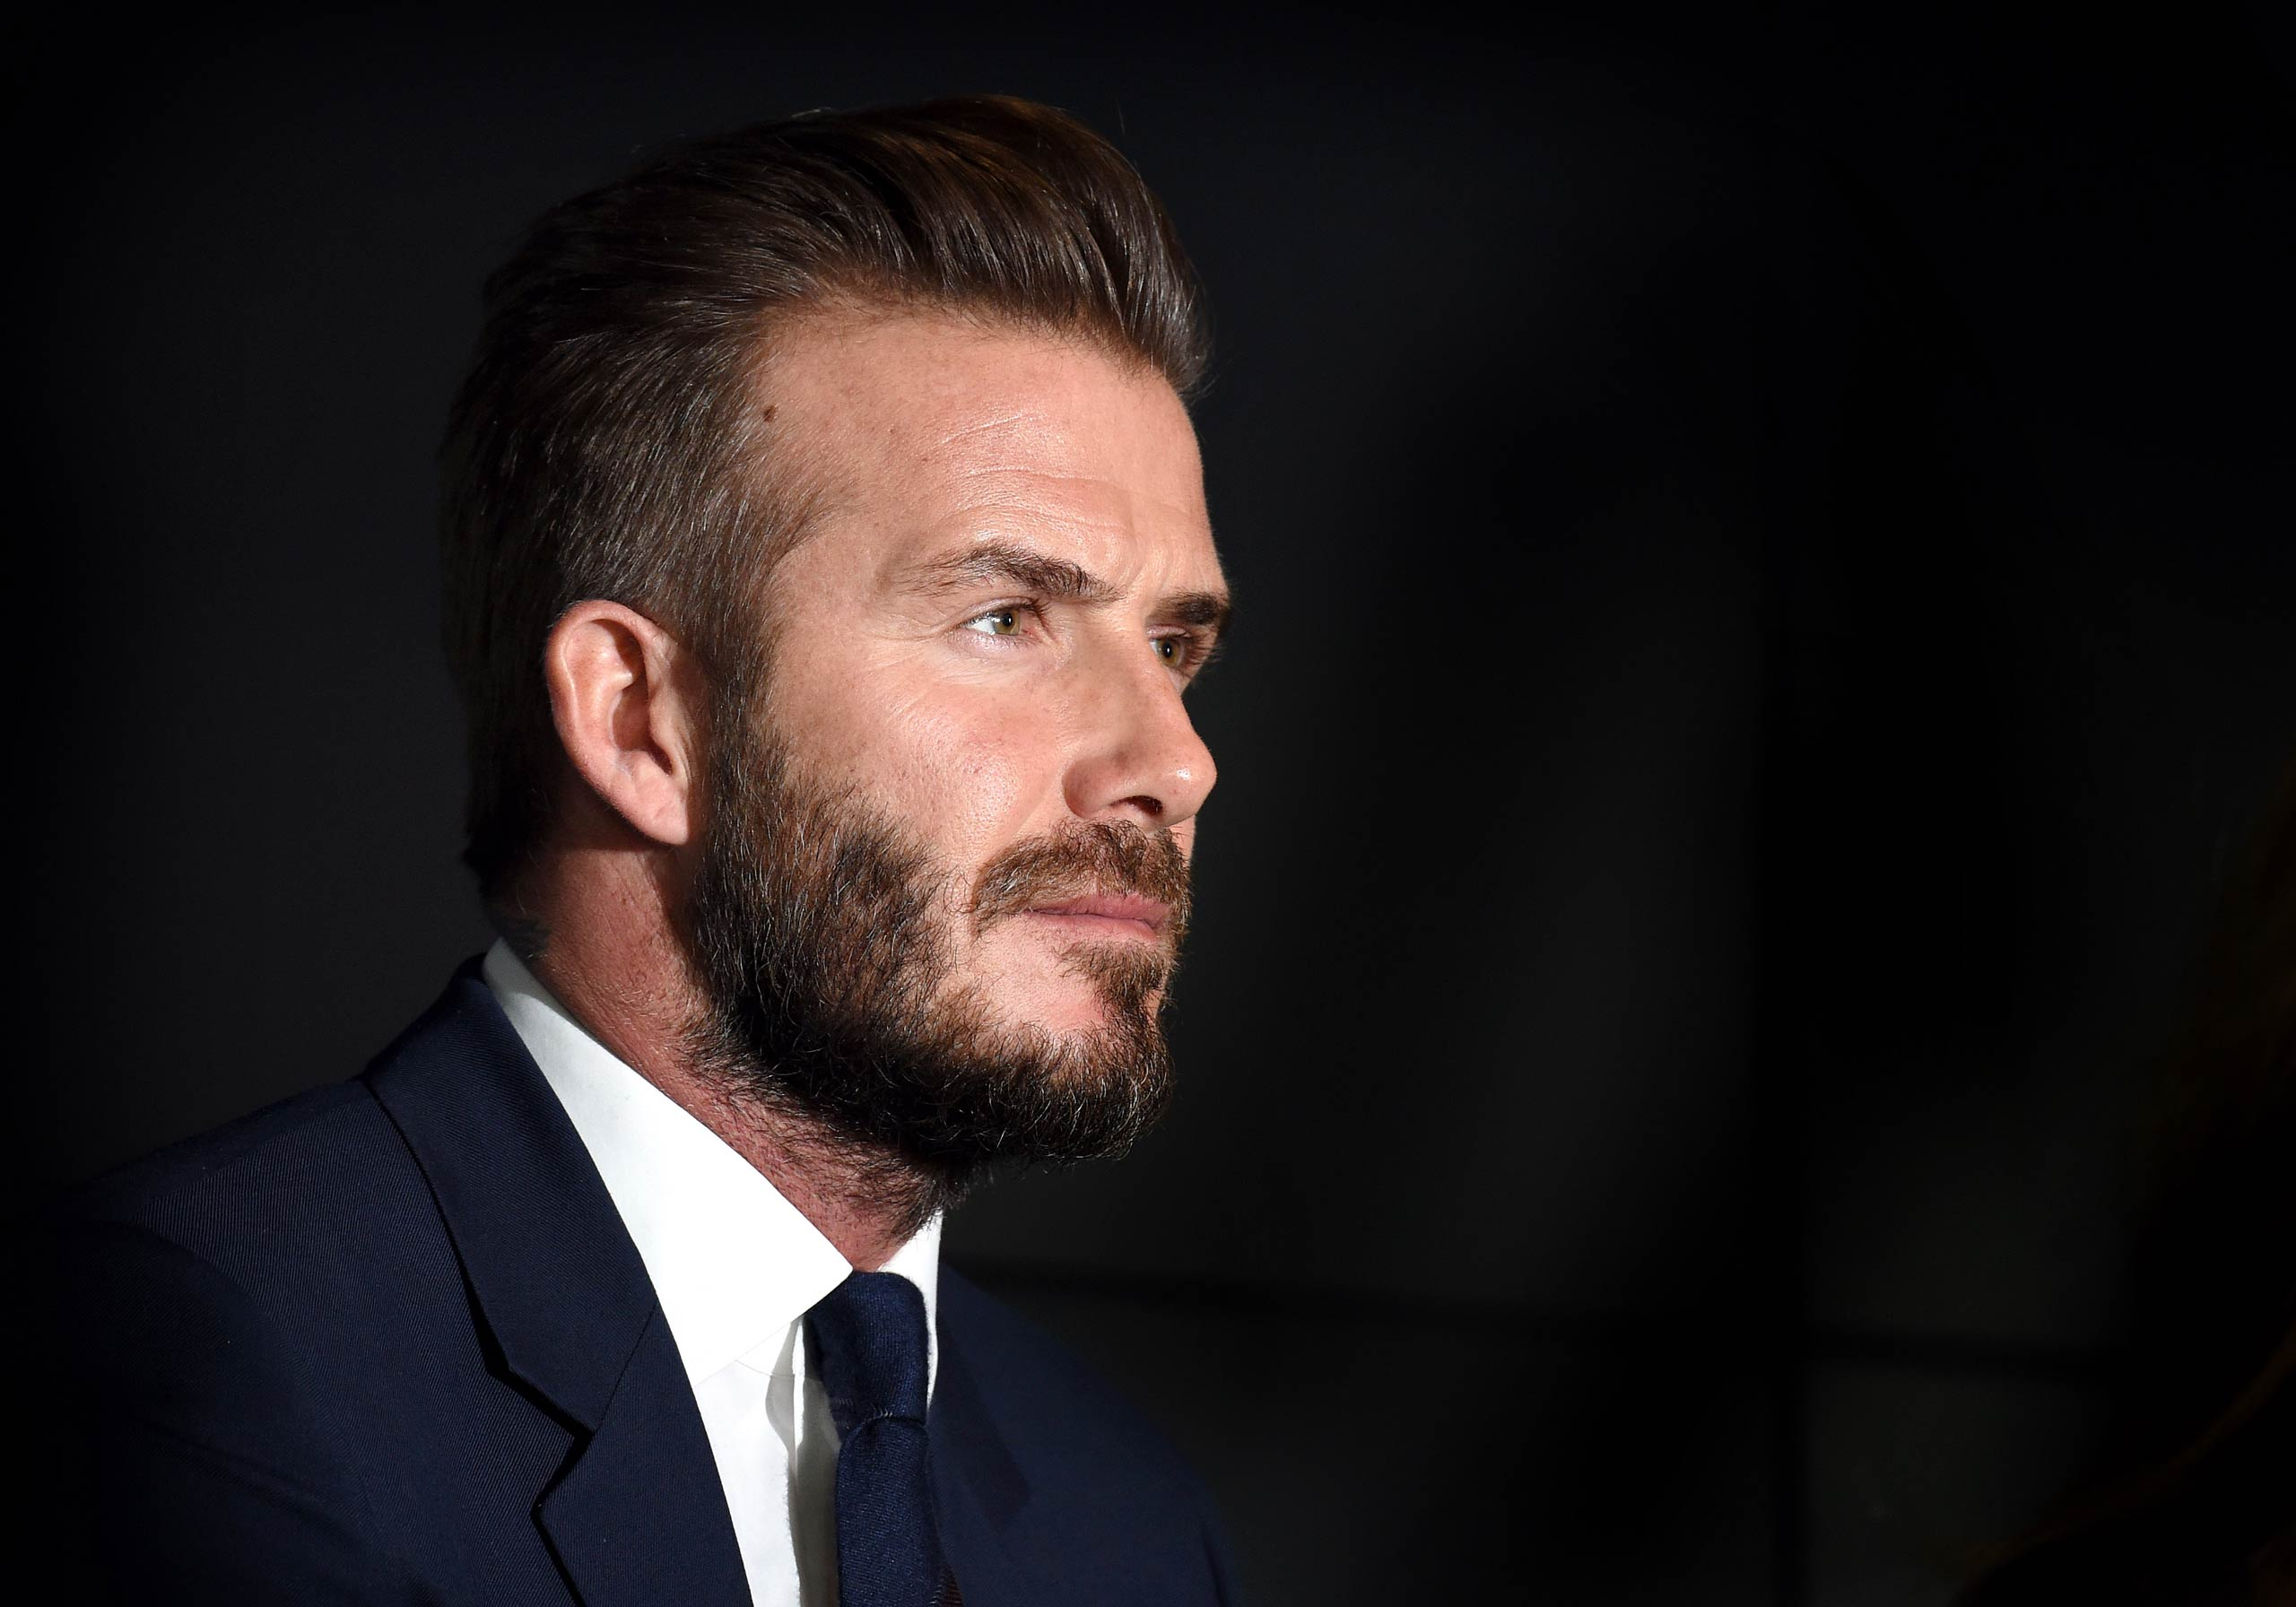 David Beckham attends a photocall as he celebrates 10 years as a UNICEF goodwill ambassado on Feb. 9, 2015 in London.